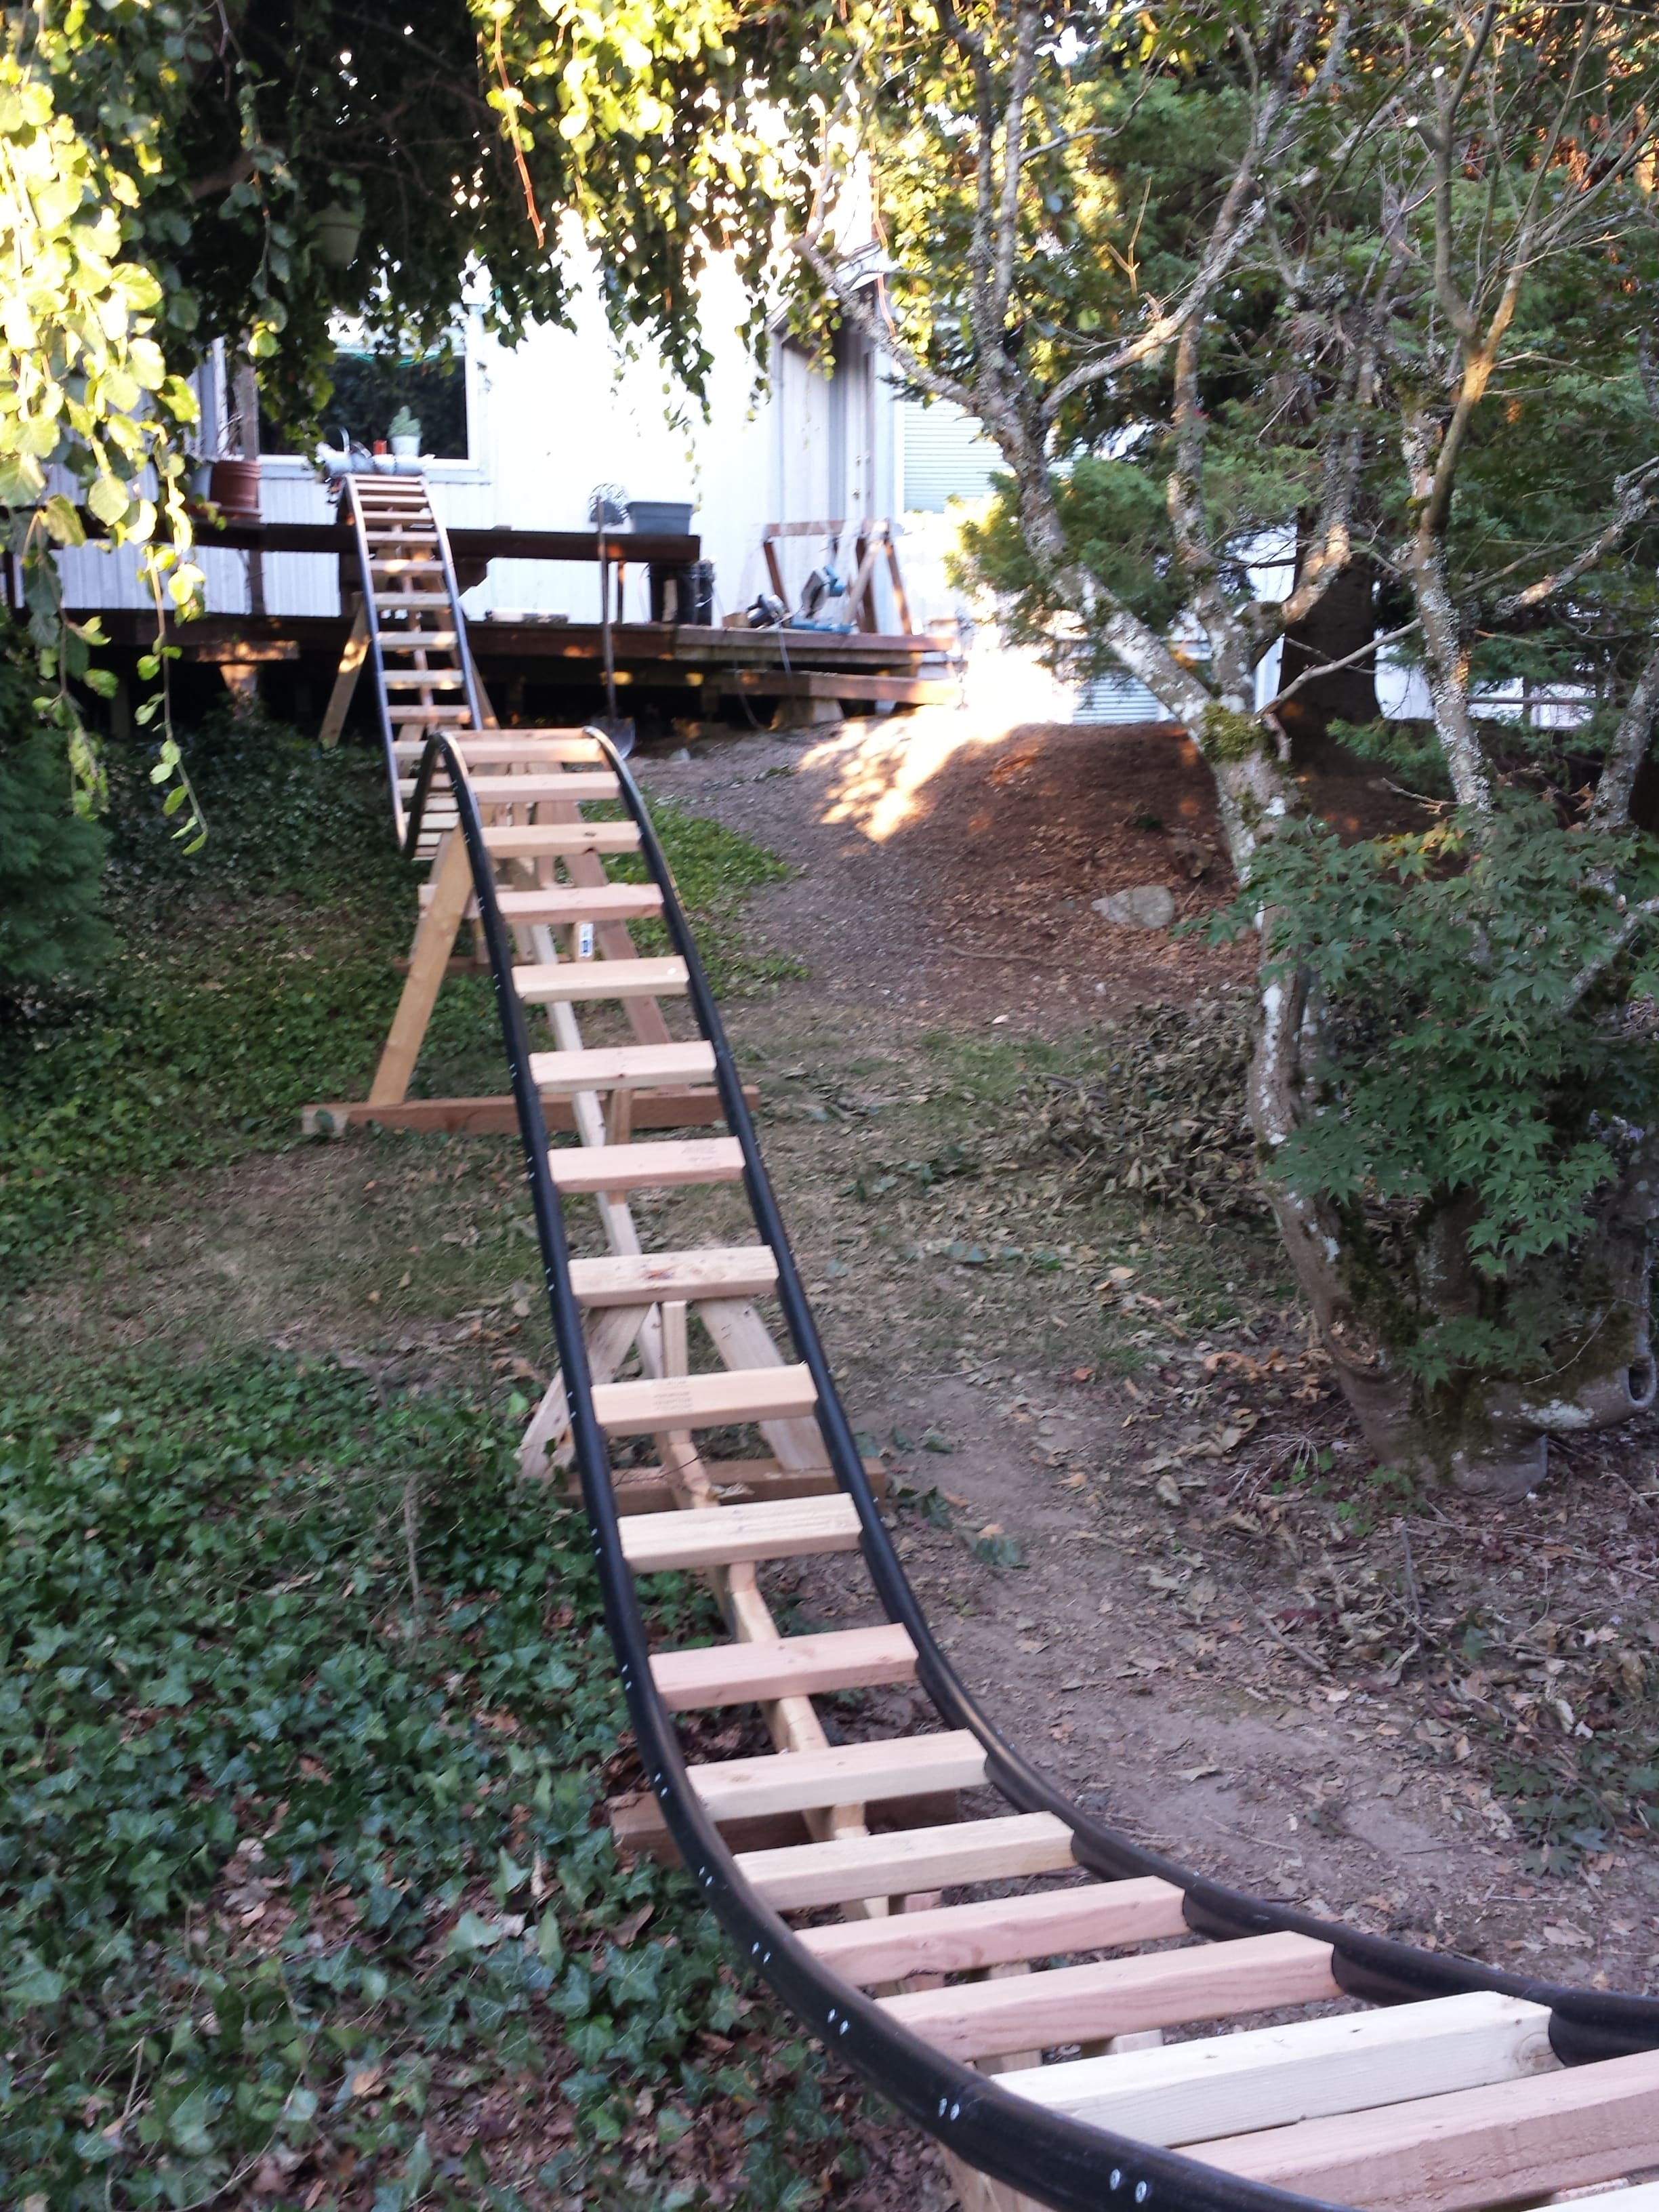 Backyard Roller Coaster Plans :  Engineer Builds a Backyard Roller Coaster for His Grandchildren